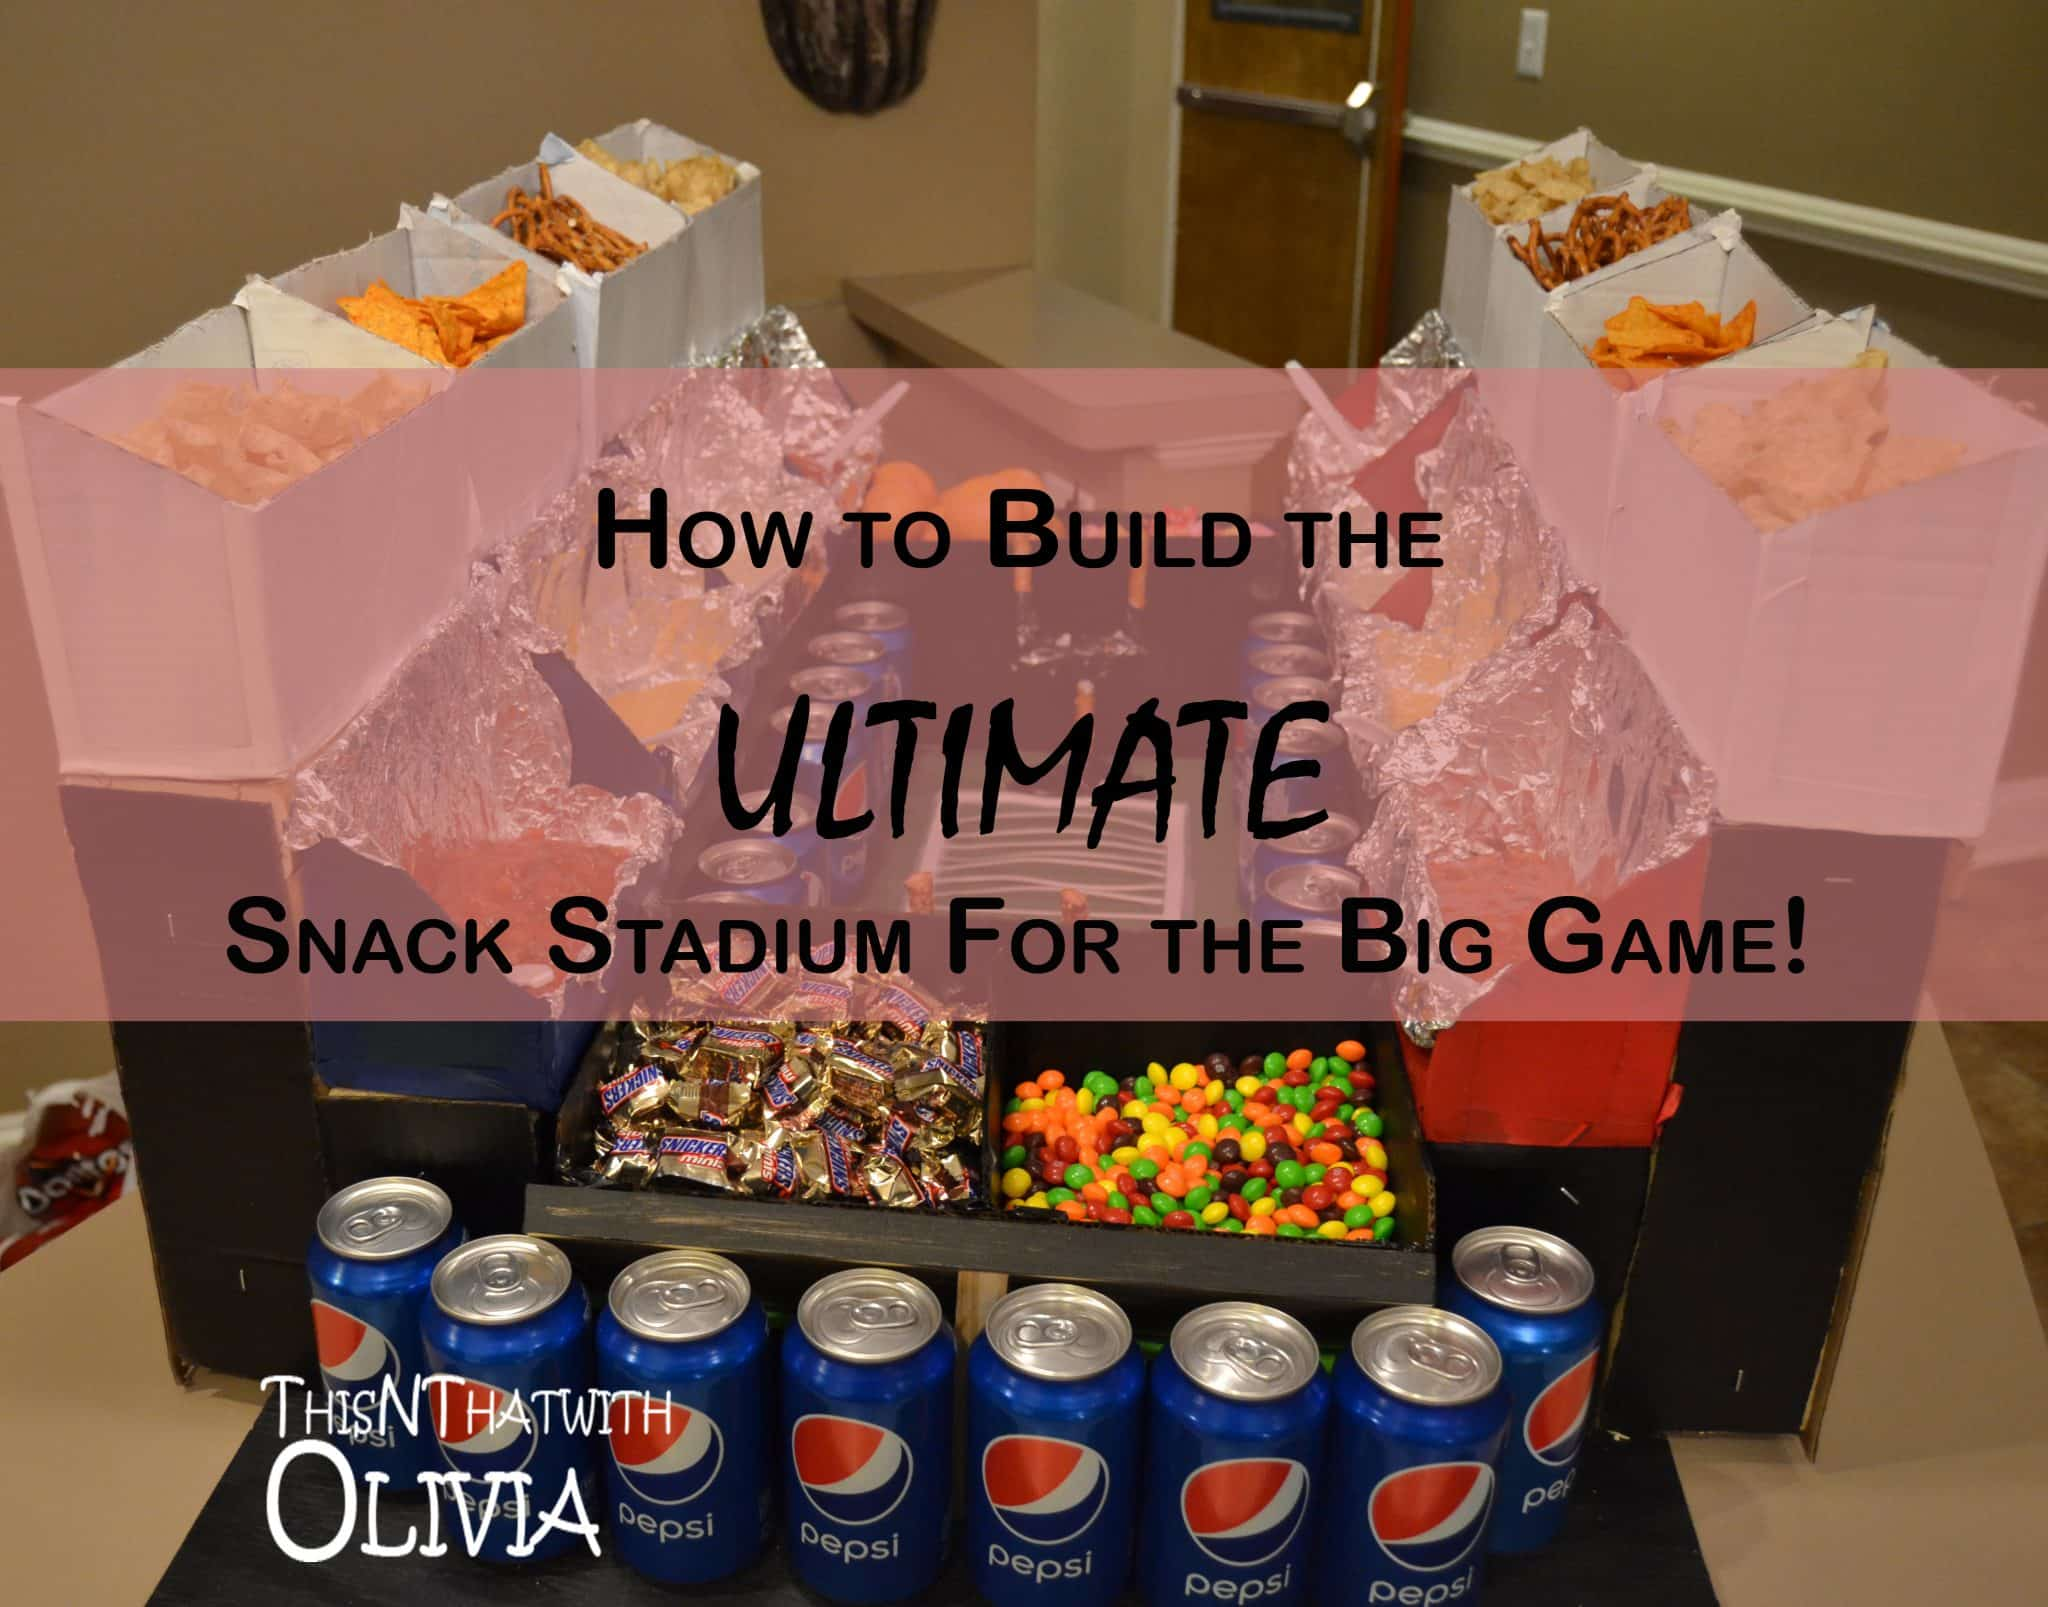 How to Build the Ultimate Snack Stadium #GameDayGlory